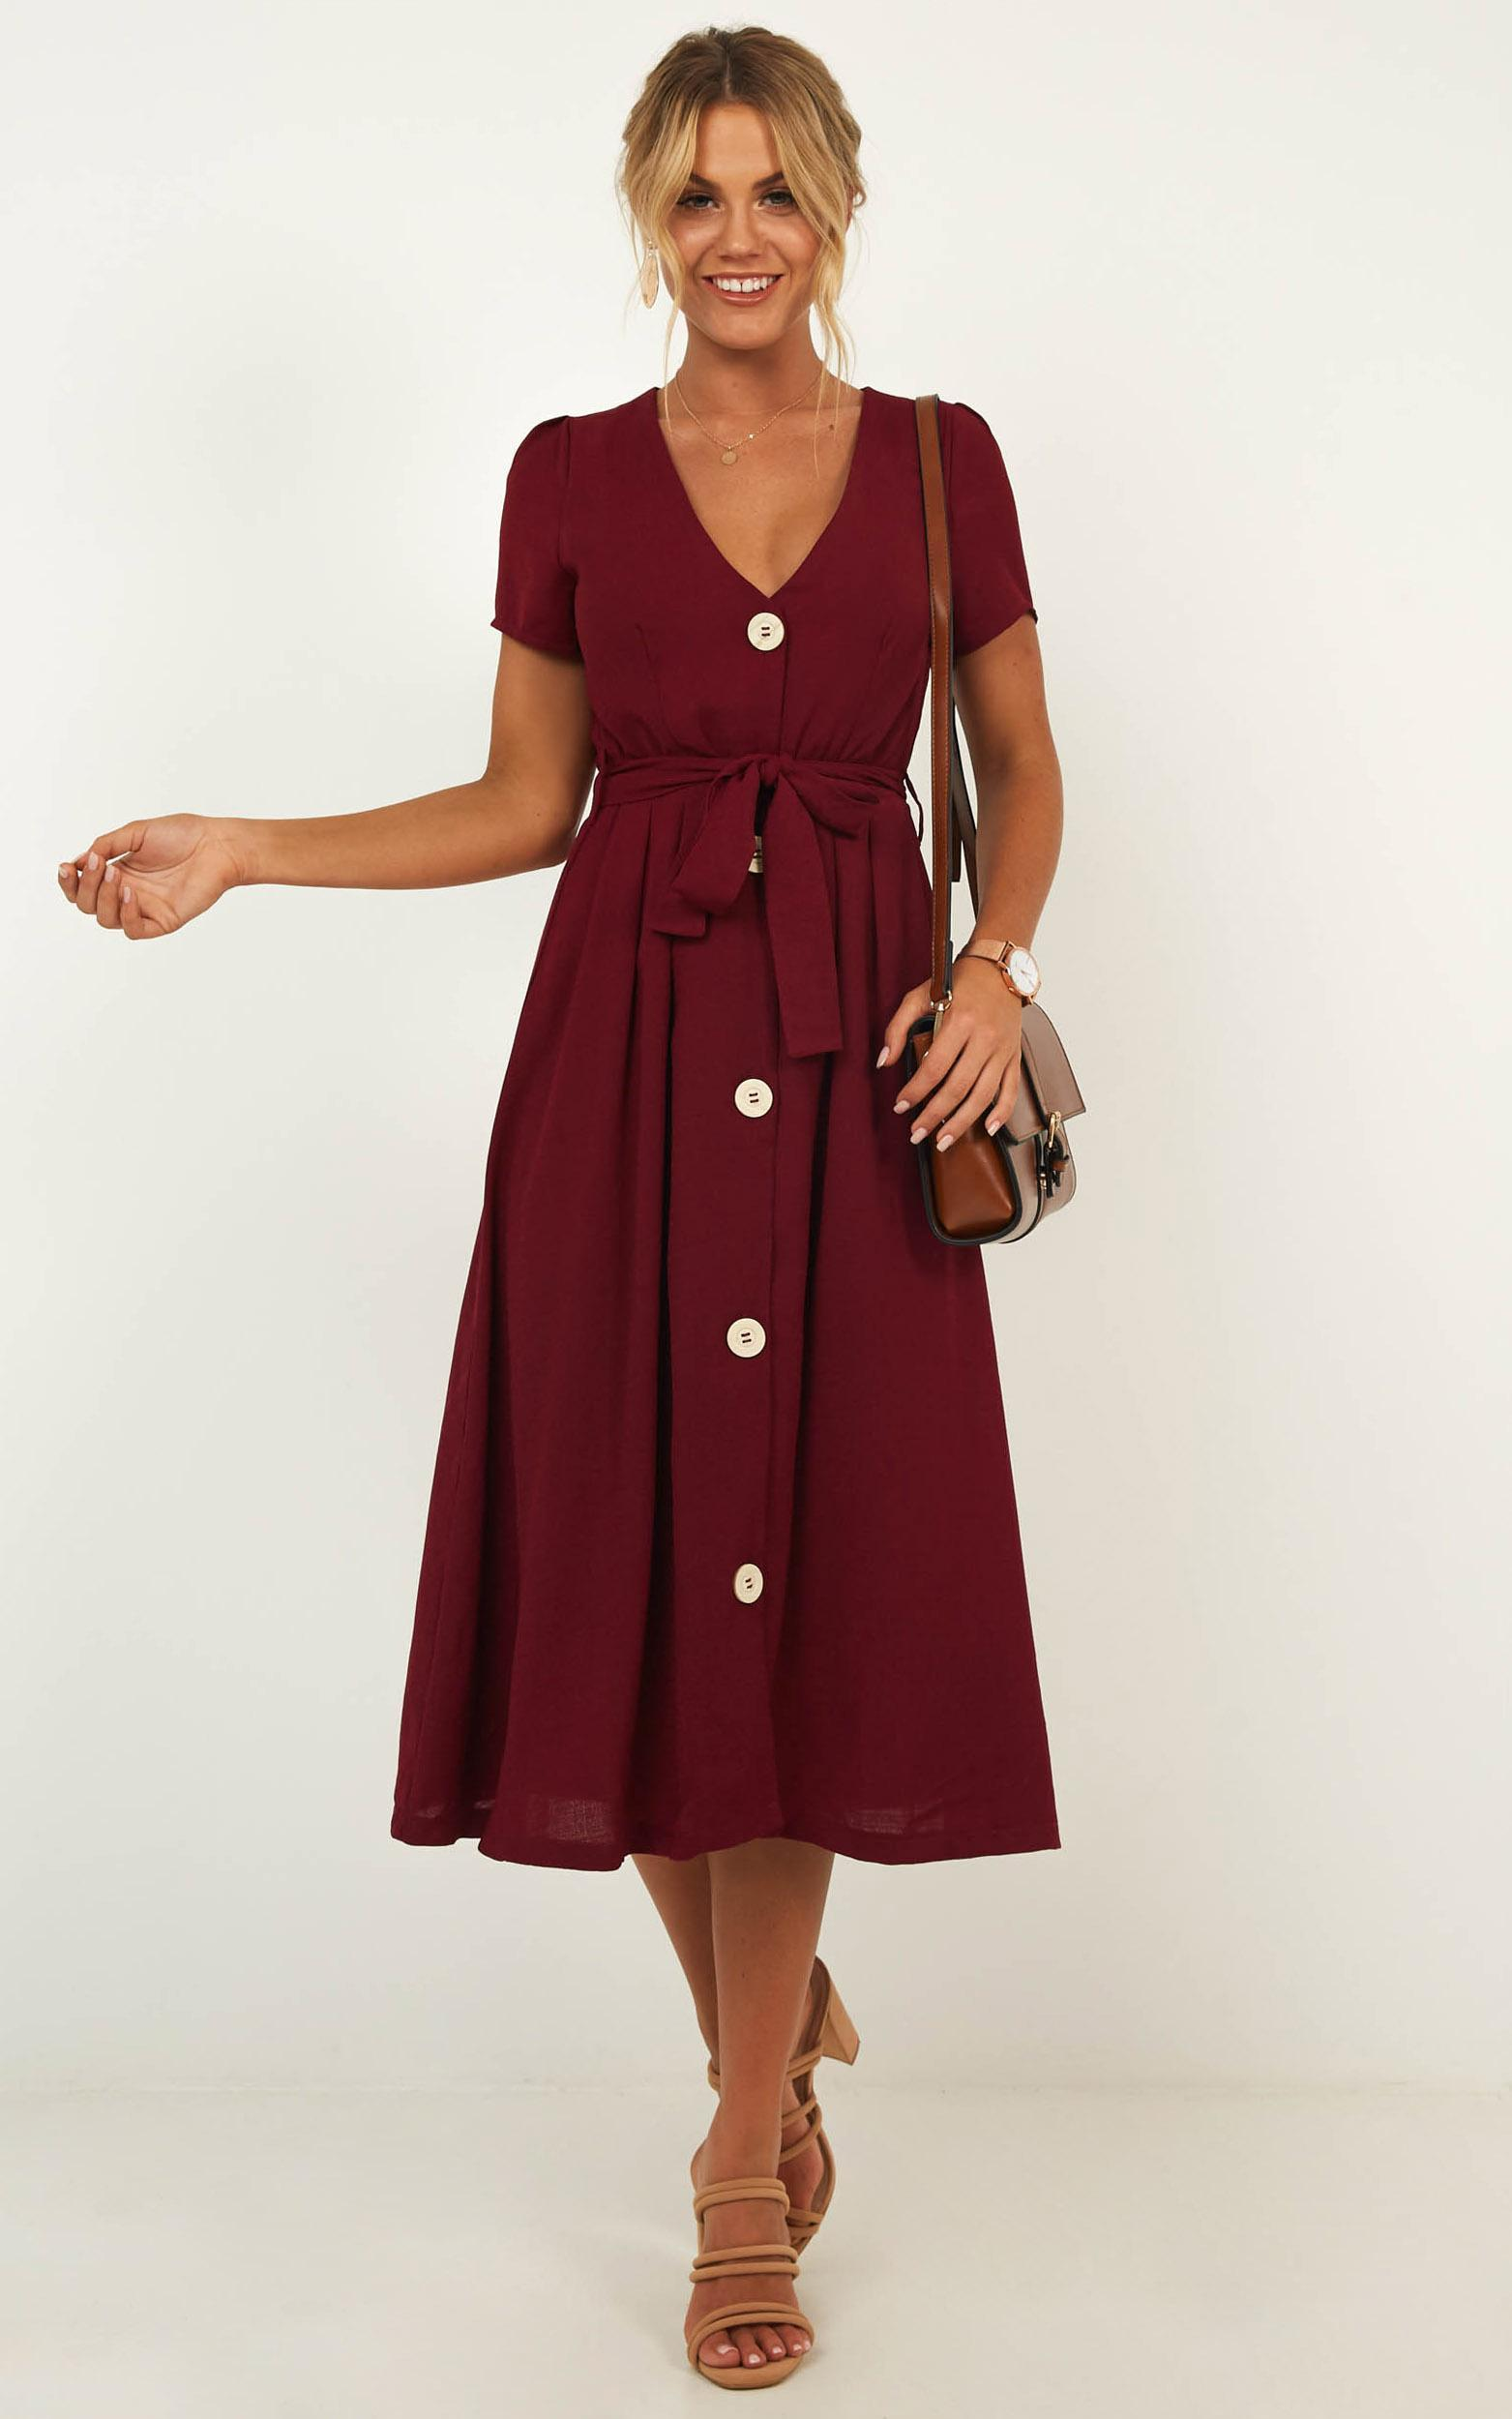 Research Breakthrough Dress In Wine - 4 (XXS), Wine, hi-res image number null